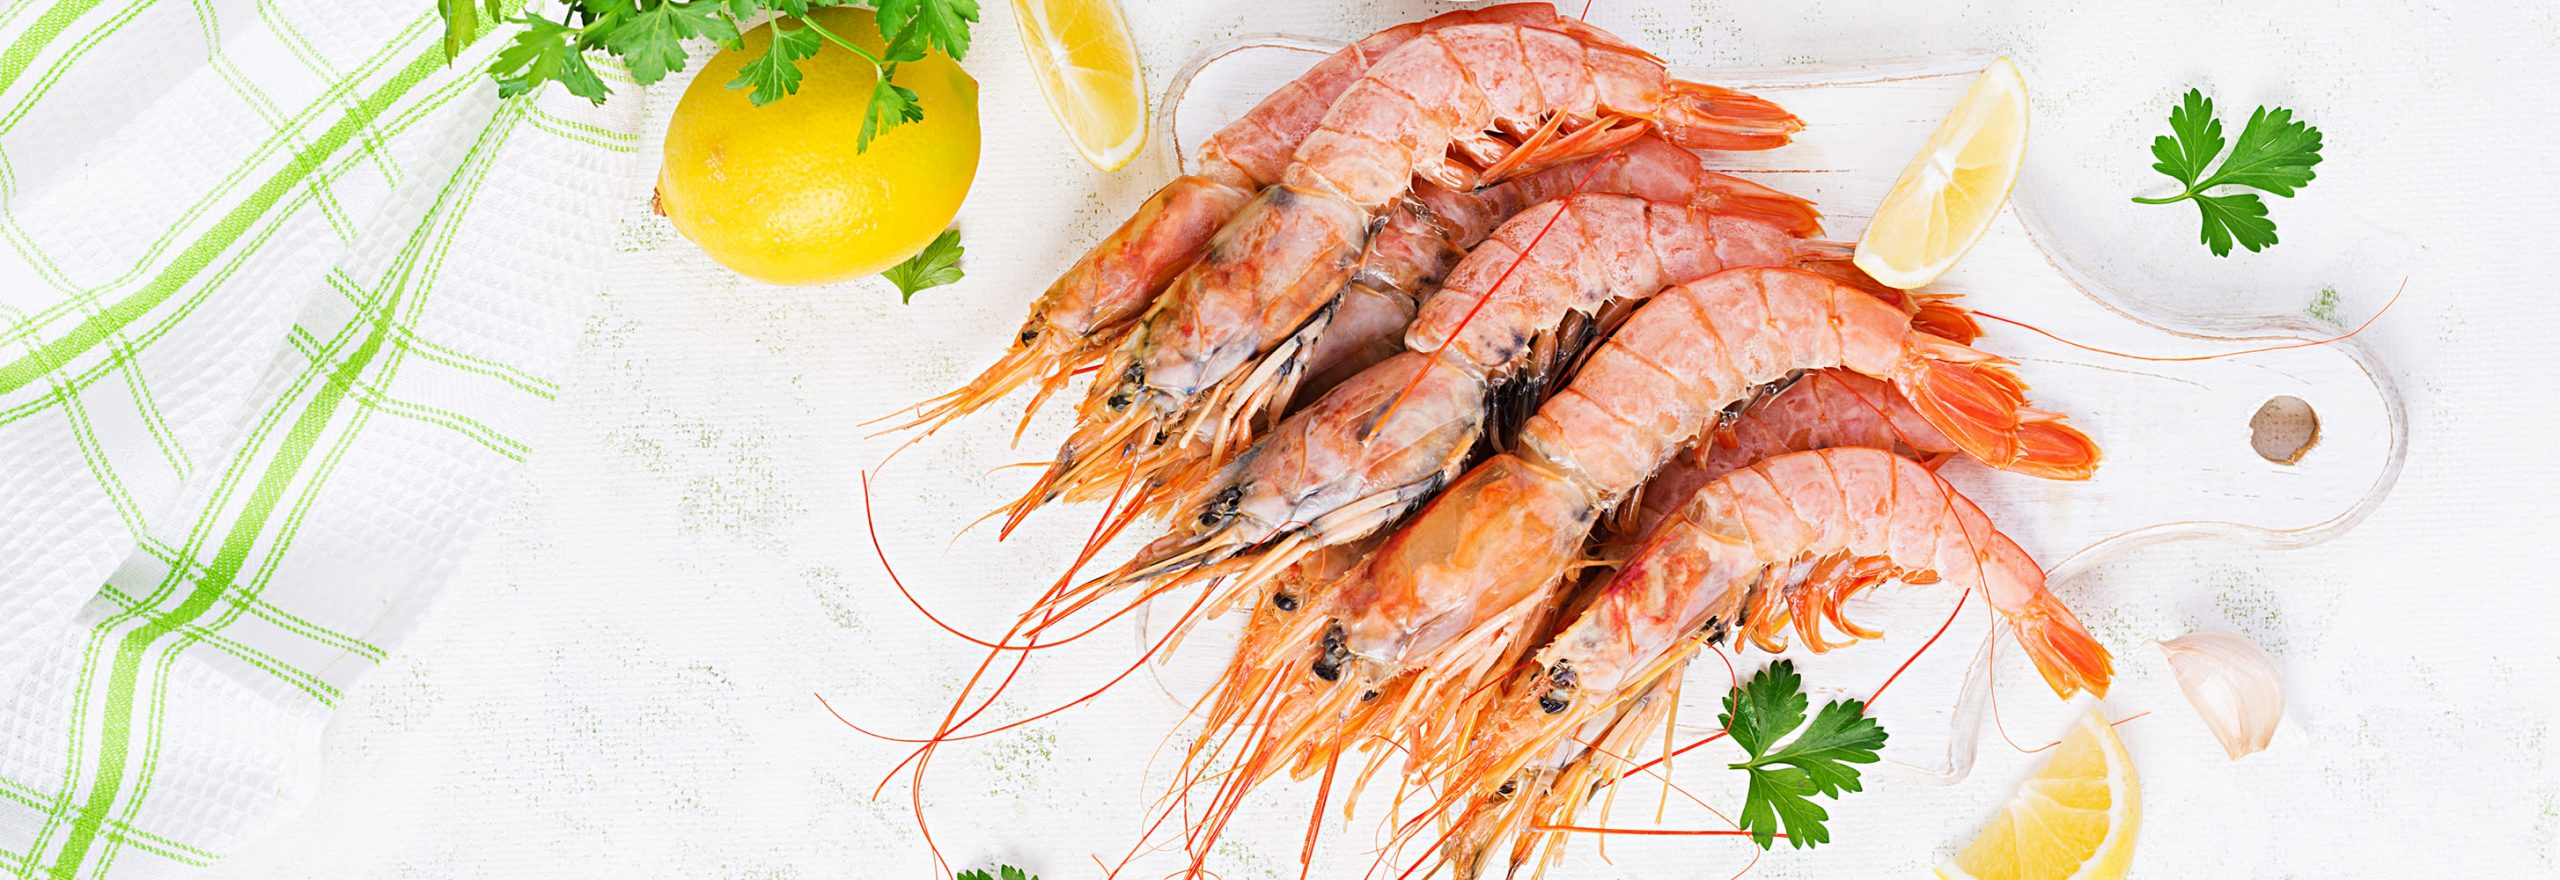 Raw wild Argentinian red shrimps/prawns  and ingredients for cooking. Delicious food. Keto / Paleo Diet. Top view, banner